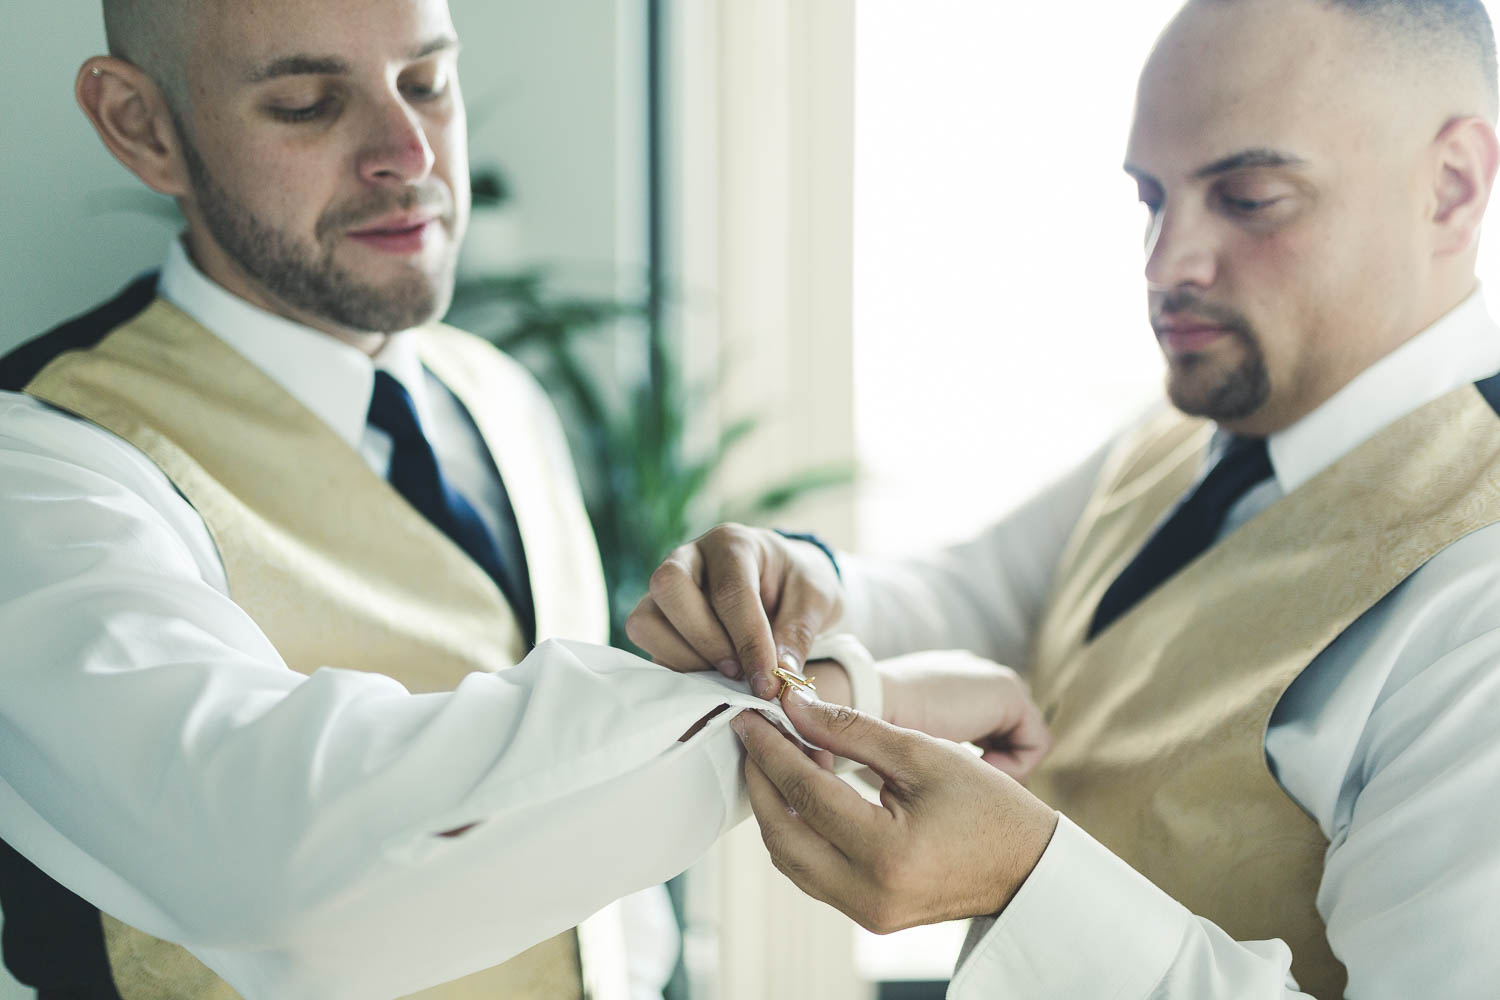 Grooms helping each other get ready